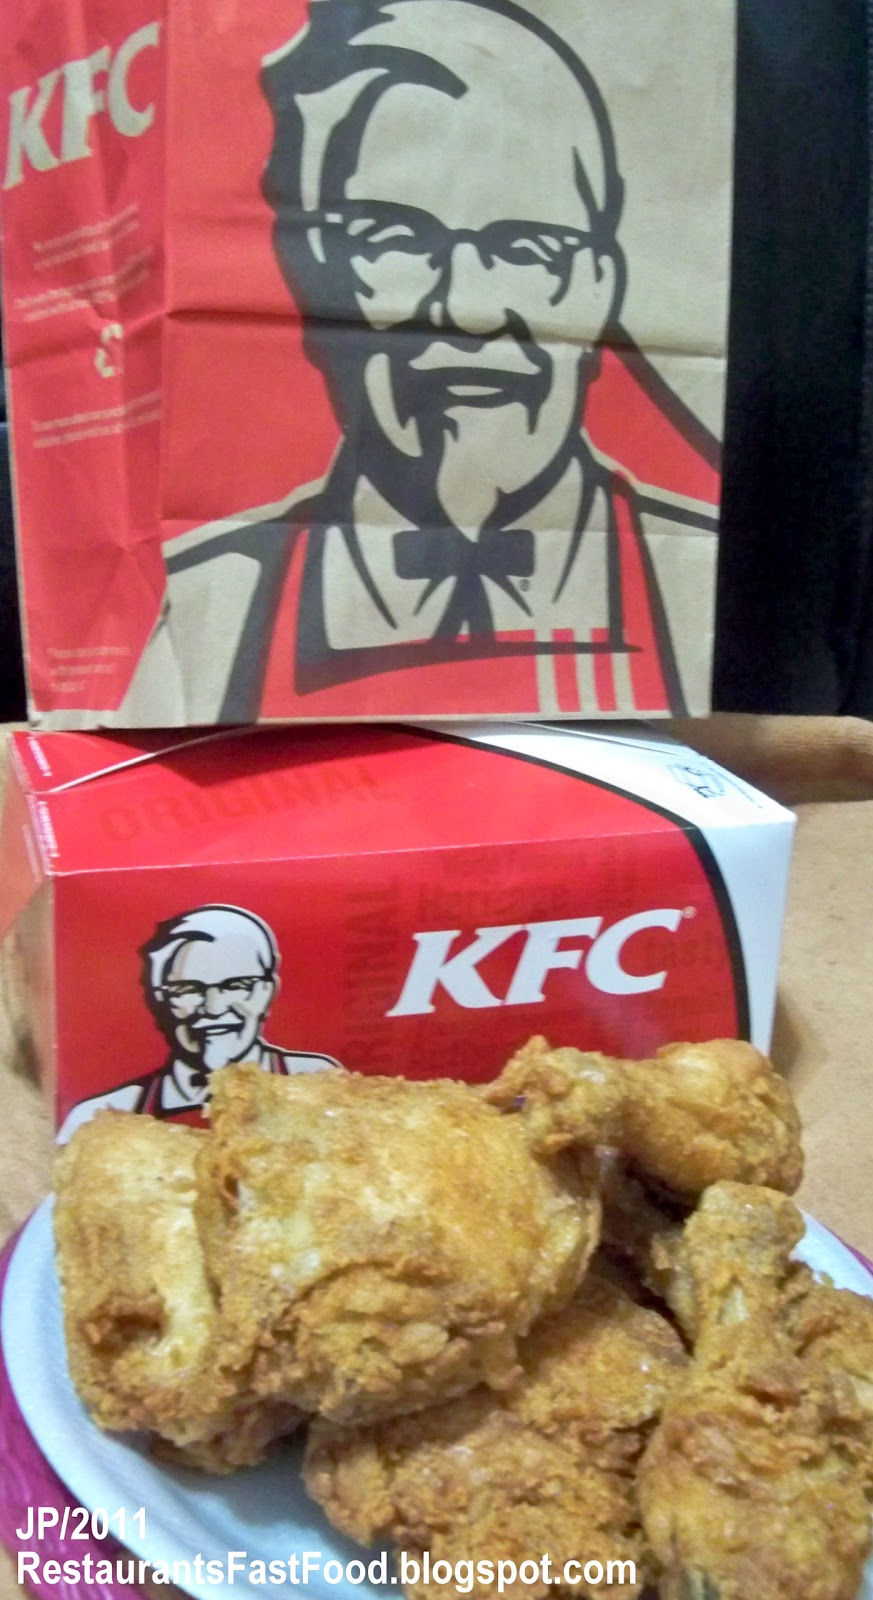 kentucky fried chicken kfc essay Result for essay kfc: (kentucky fried chicken) the burger was even more delicious than my favorite kentucky fried chicken how to write an essay.